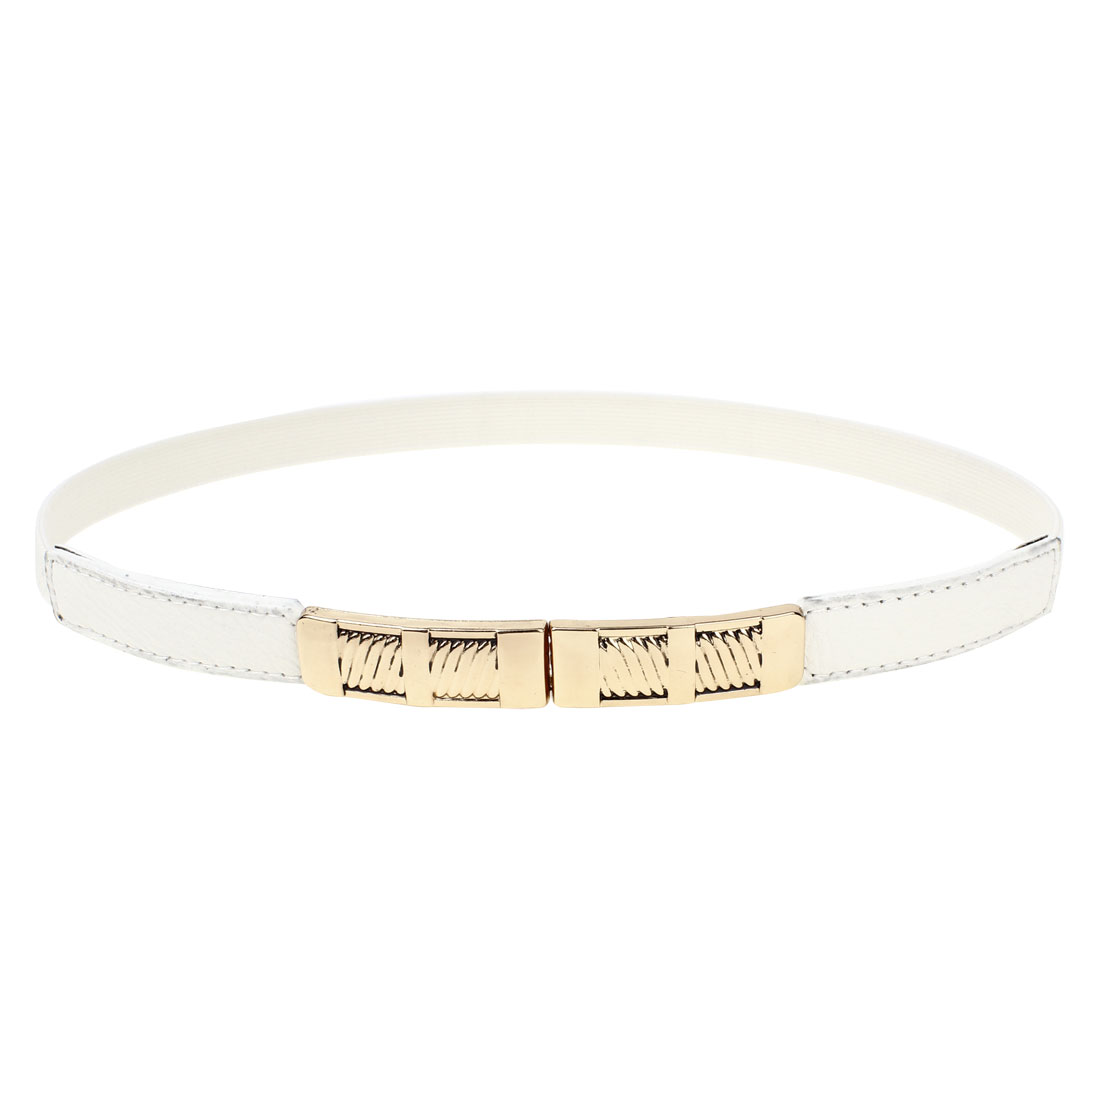 Gold Tone Buckle 1.5cm Width Stretchy Band Waistbelt Cinch Belt White for Women